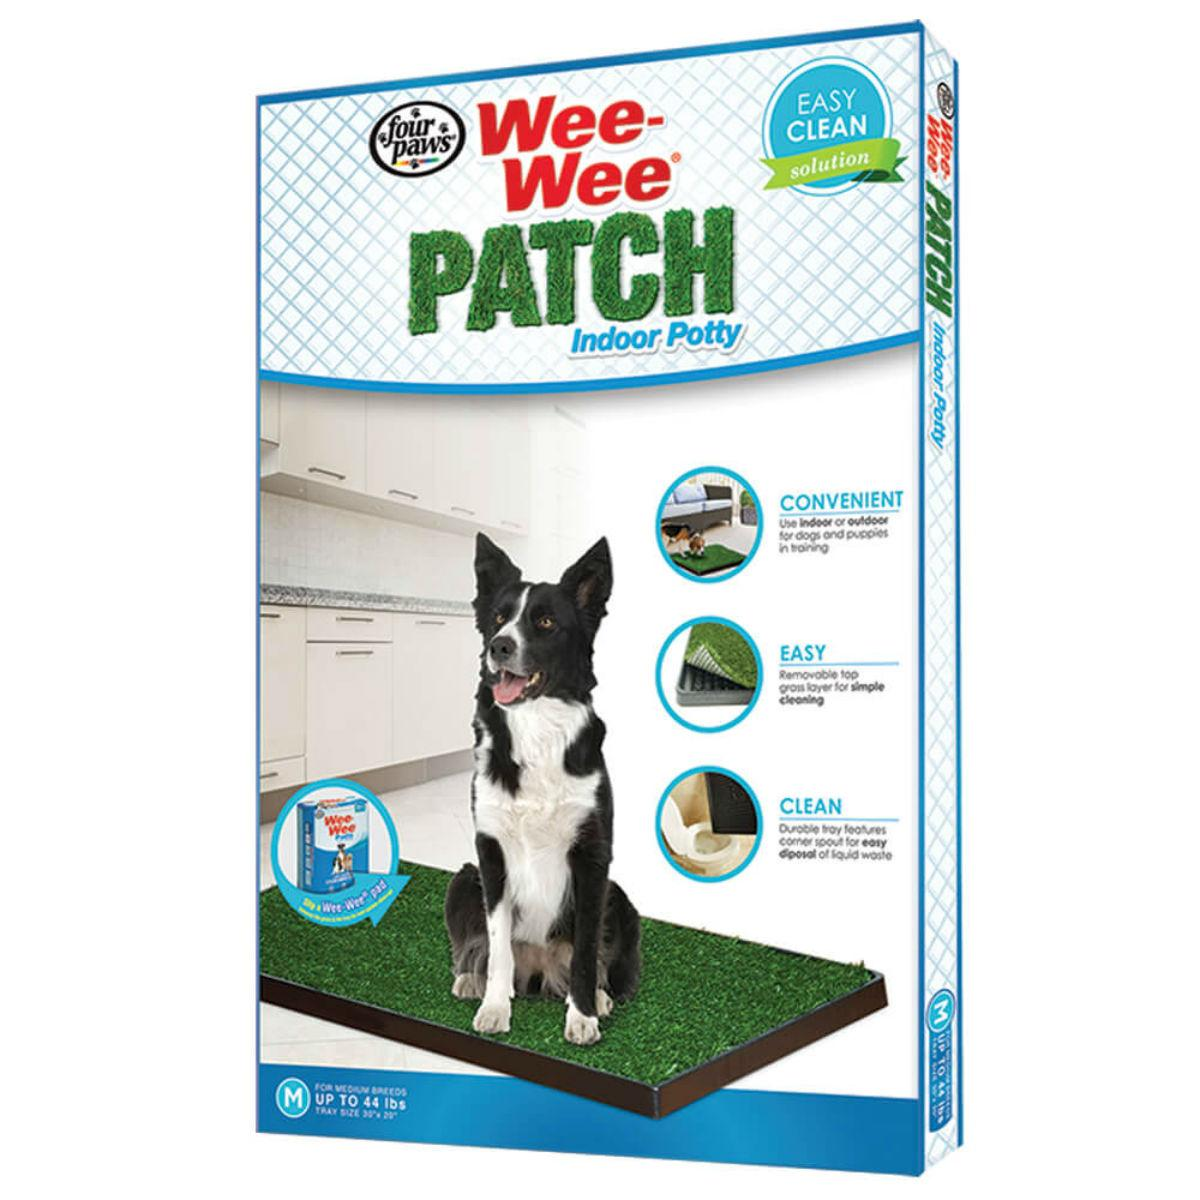 Four Paws Wee-Wee Patch Indoor Potty